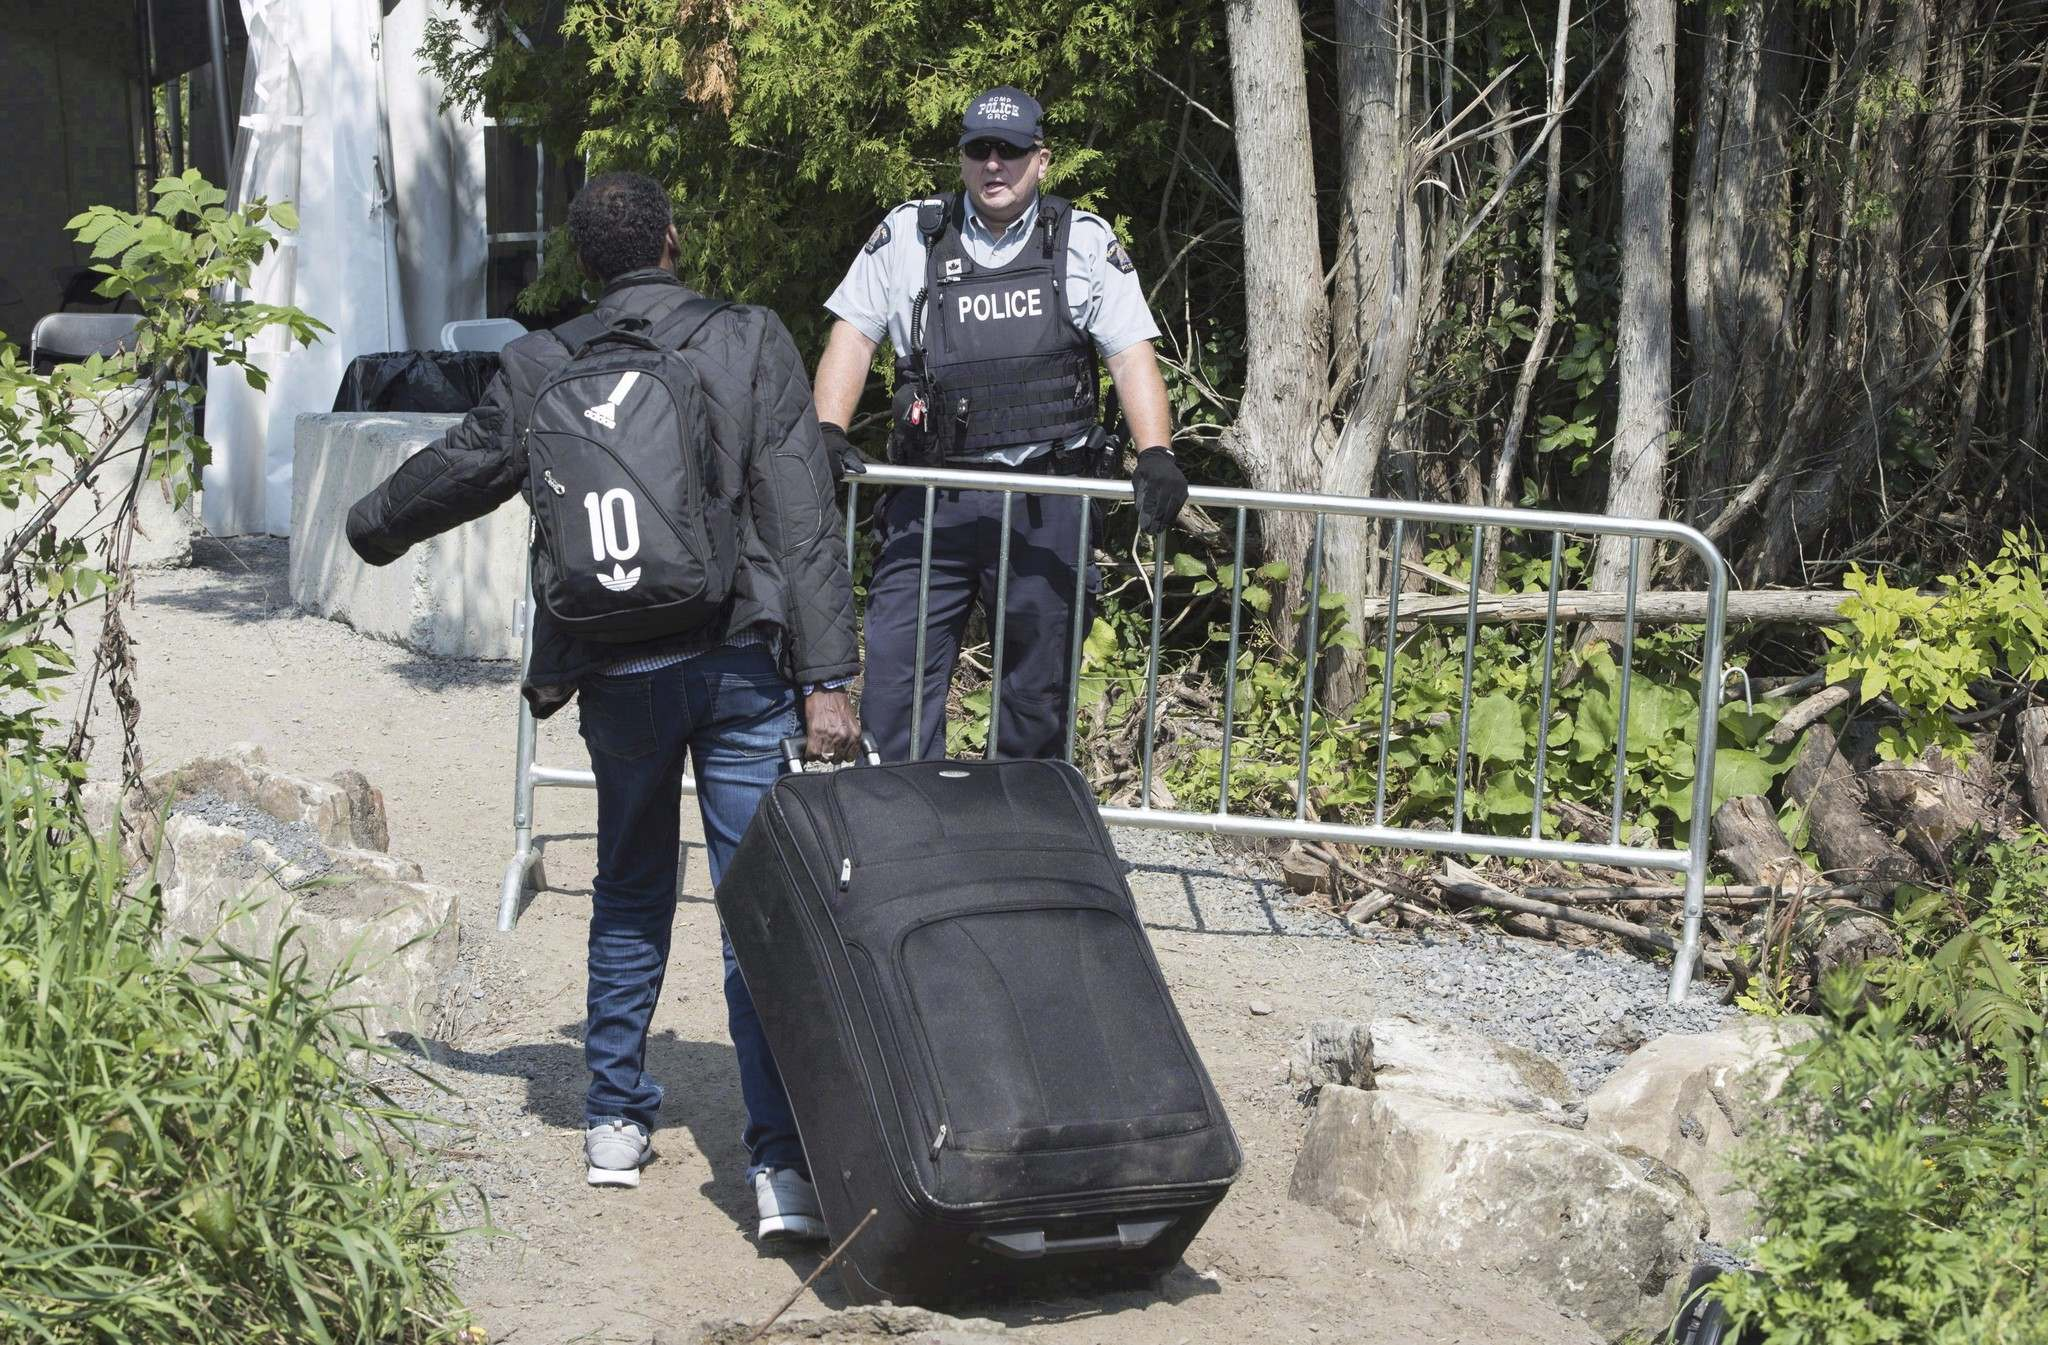 THE CANADIAN PRESS/Paul Chiasson</p><p>An asylum seeker, claiming to be from Eritrea, is confronted by an RCMP officer as he crosses the border into Canada. A new poll has found 76 per cent of Manitoba respondents agreed with the statement: &#34;This situation is a crisis &#8211; Canada&#39;s ability to handle the situation is at a limit.&#34;</p>